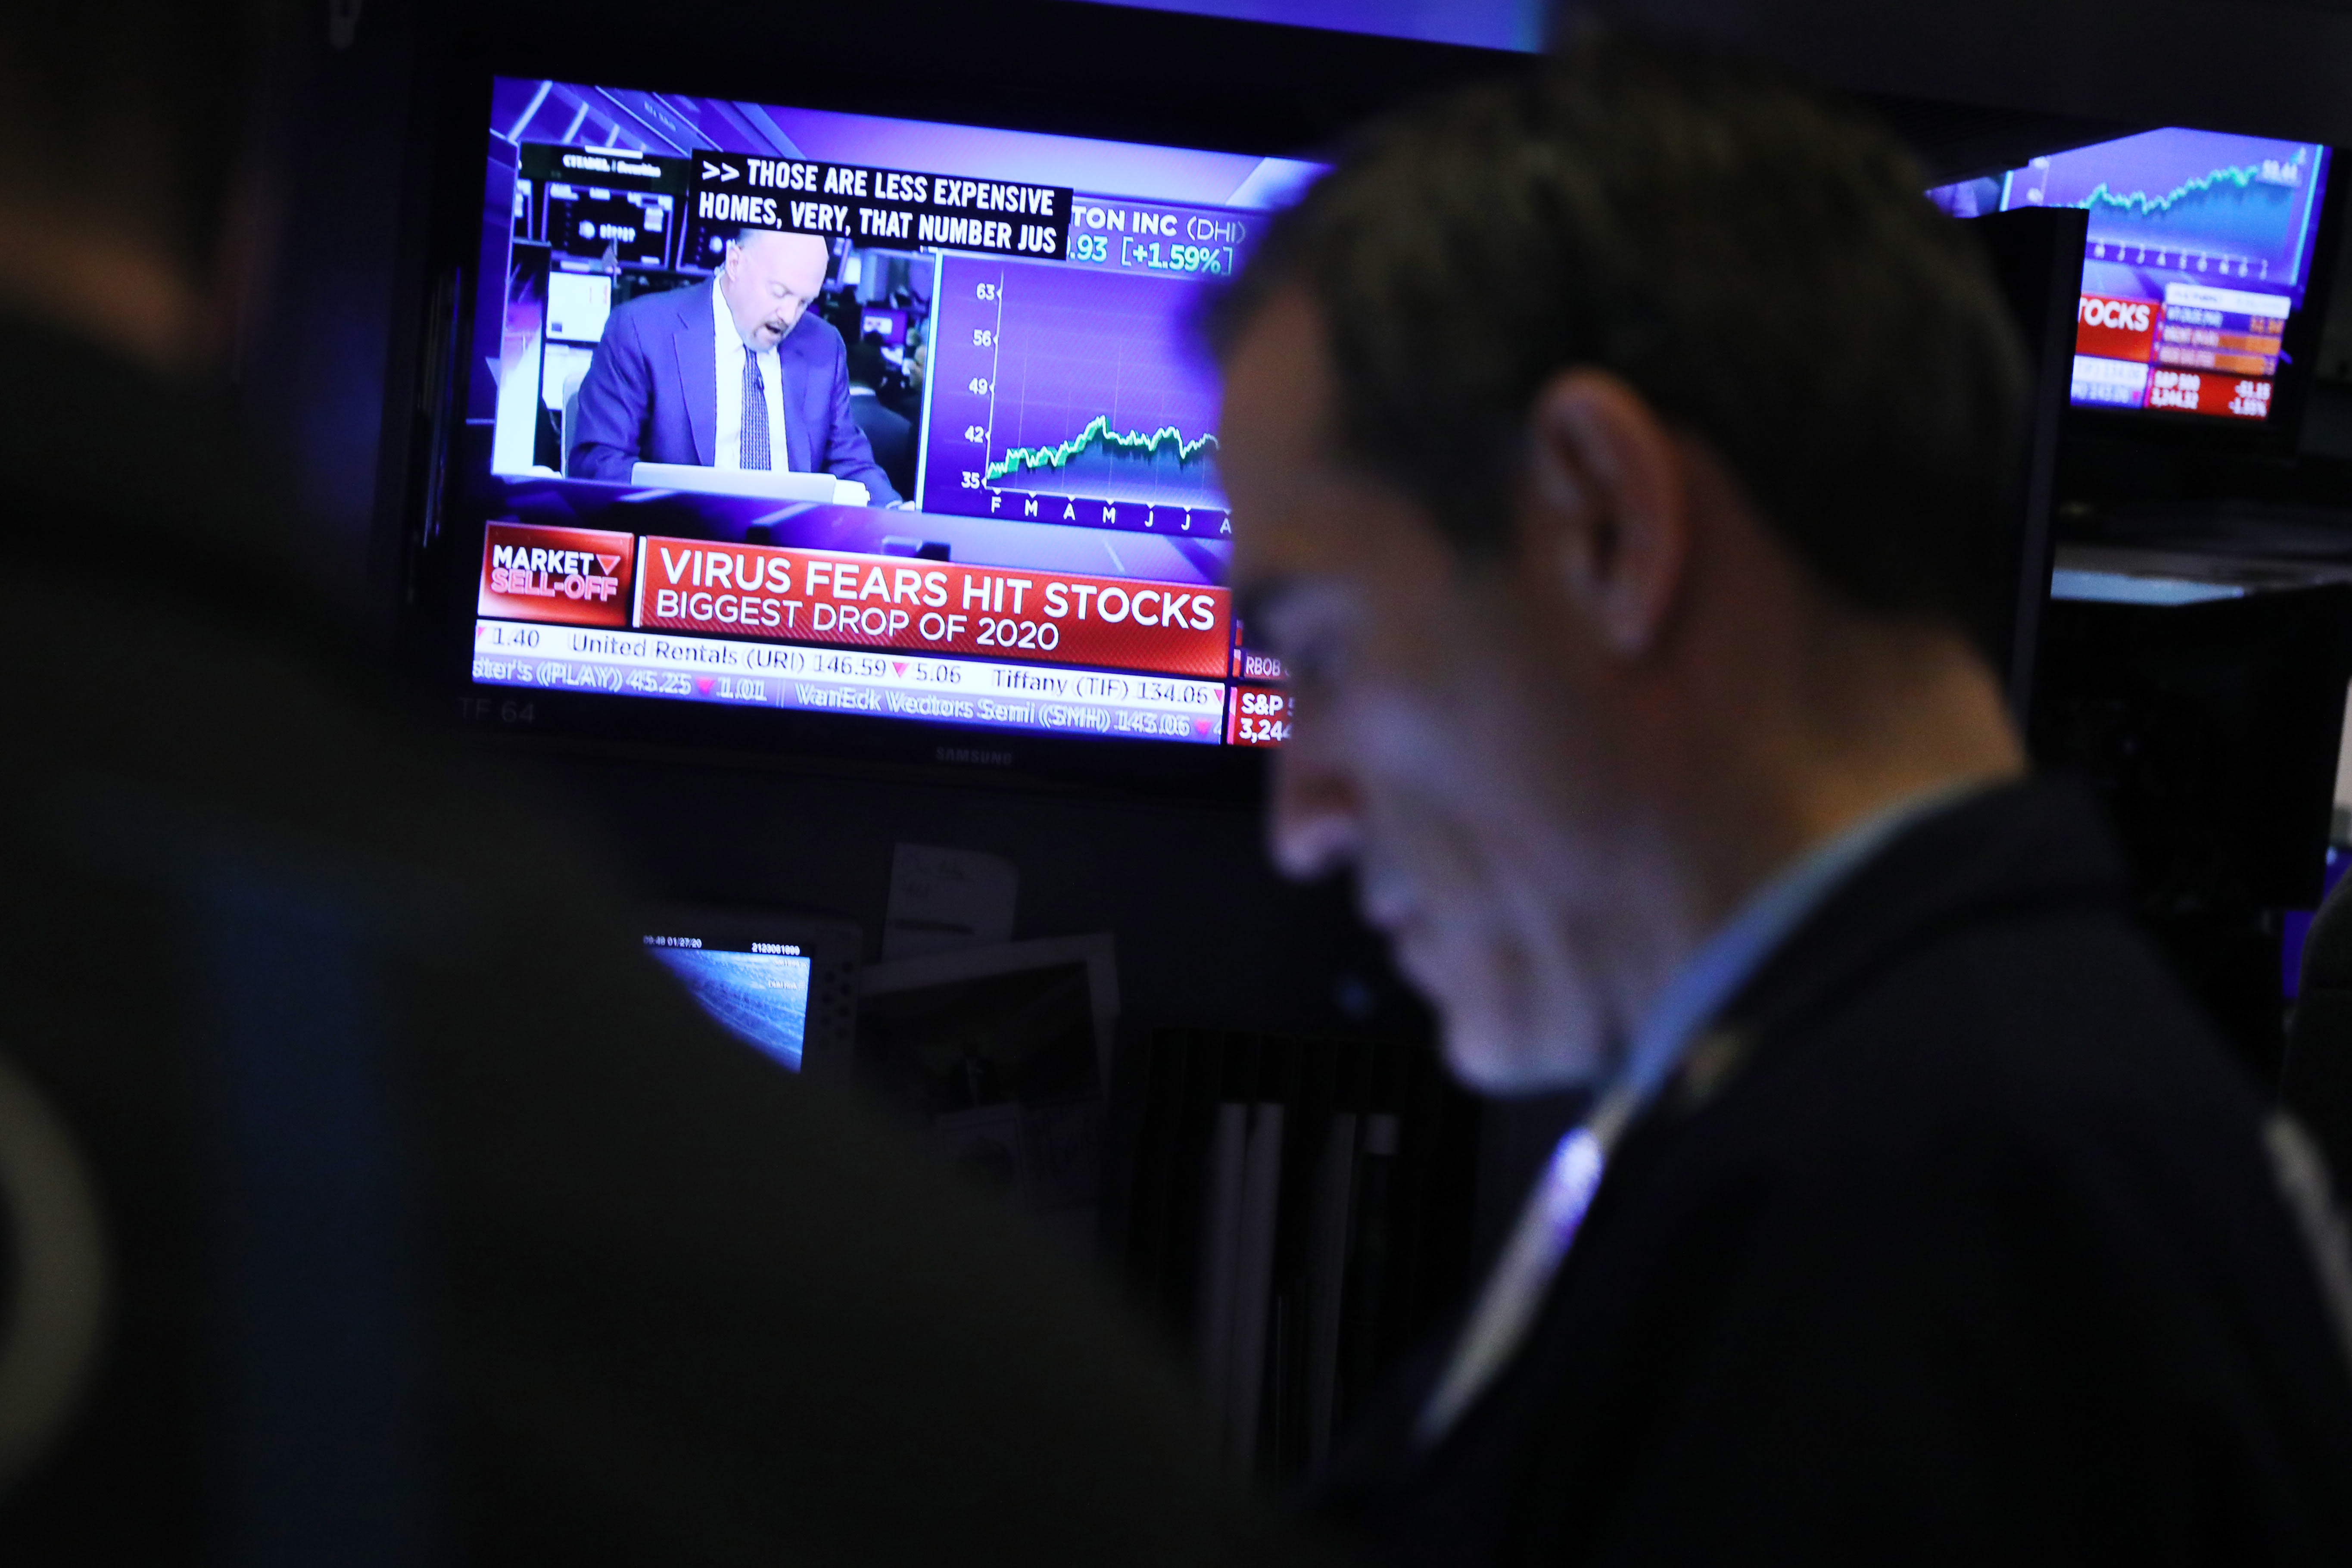 US futures point to slightly higher open after new record highs on Wall Street